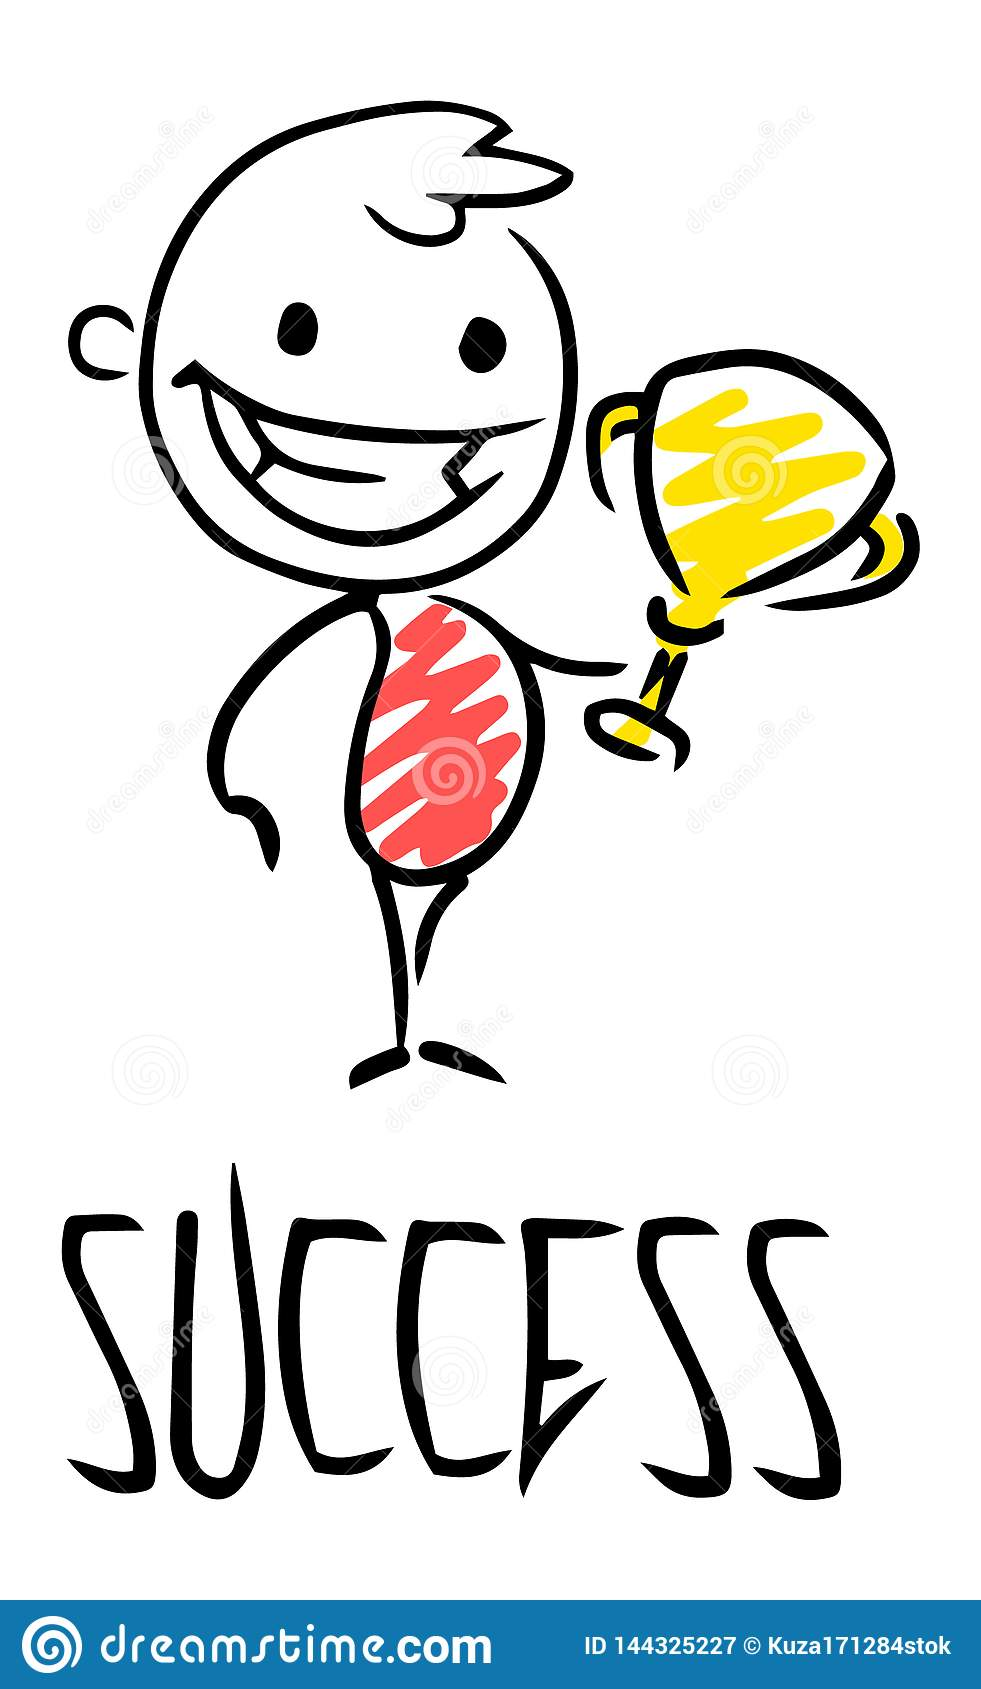 sketch working leader success doodle cute concept about power hand drawn cartoon vector illustration for business design stock vector illustration of child drawing 144325227 https www dreamstime com hand drawn cartoon vector illustration business design sketch working leader success doodle cute concept power hand image144325227